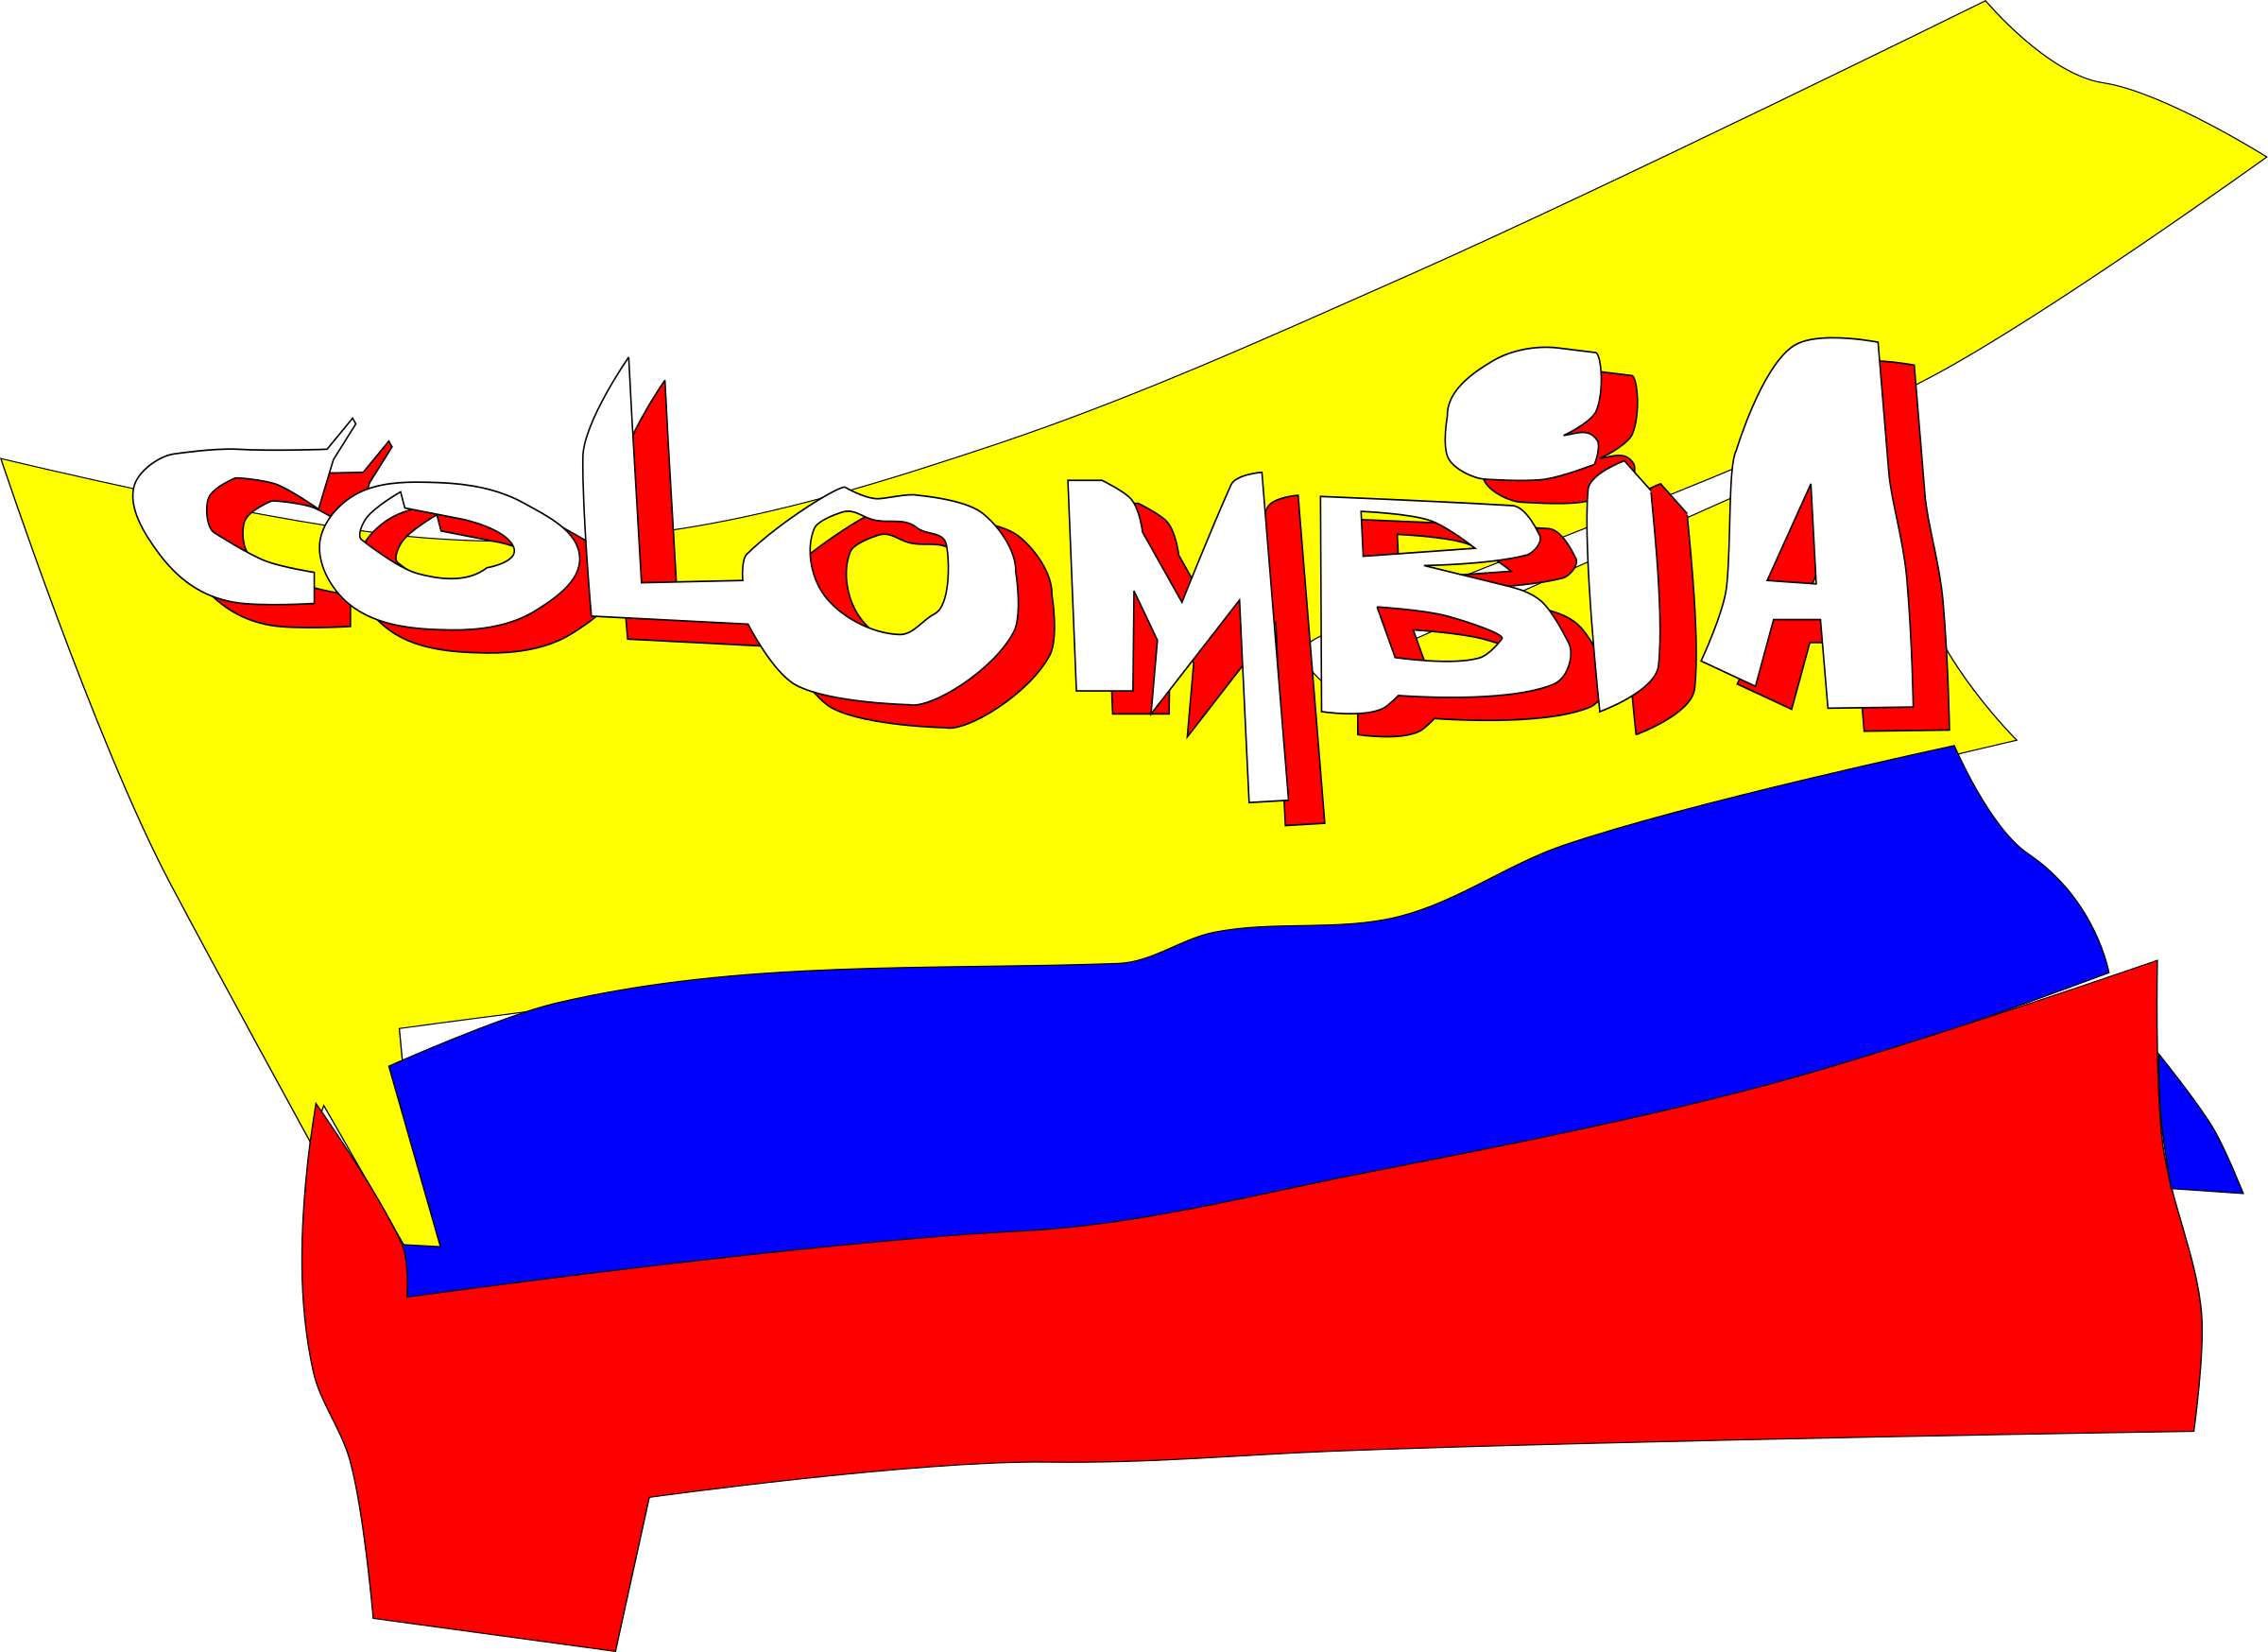 Colombia animada by Esteban